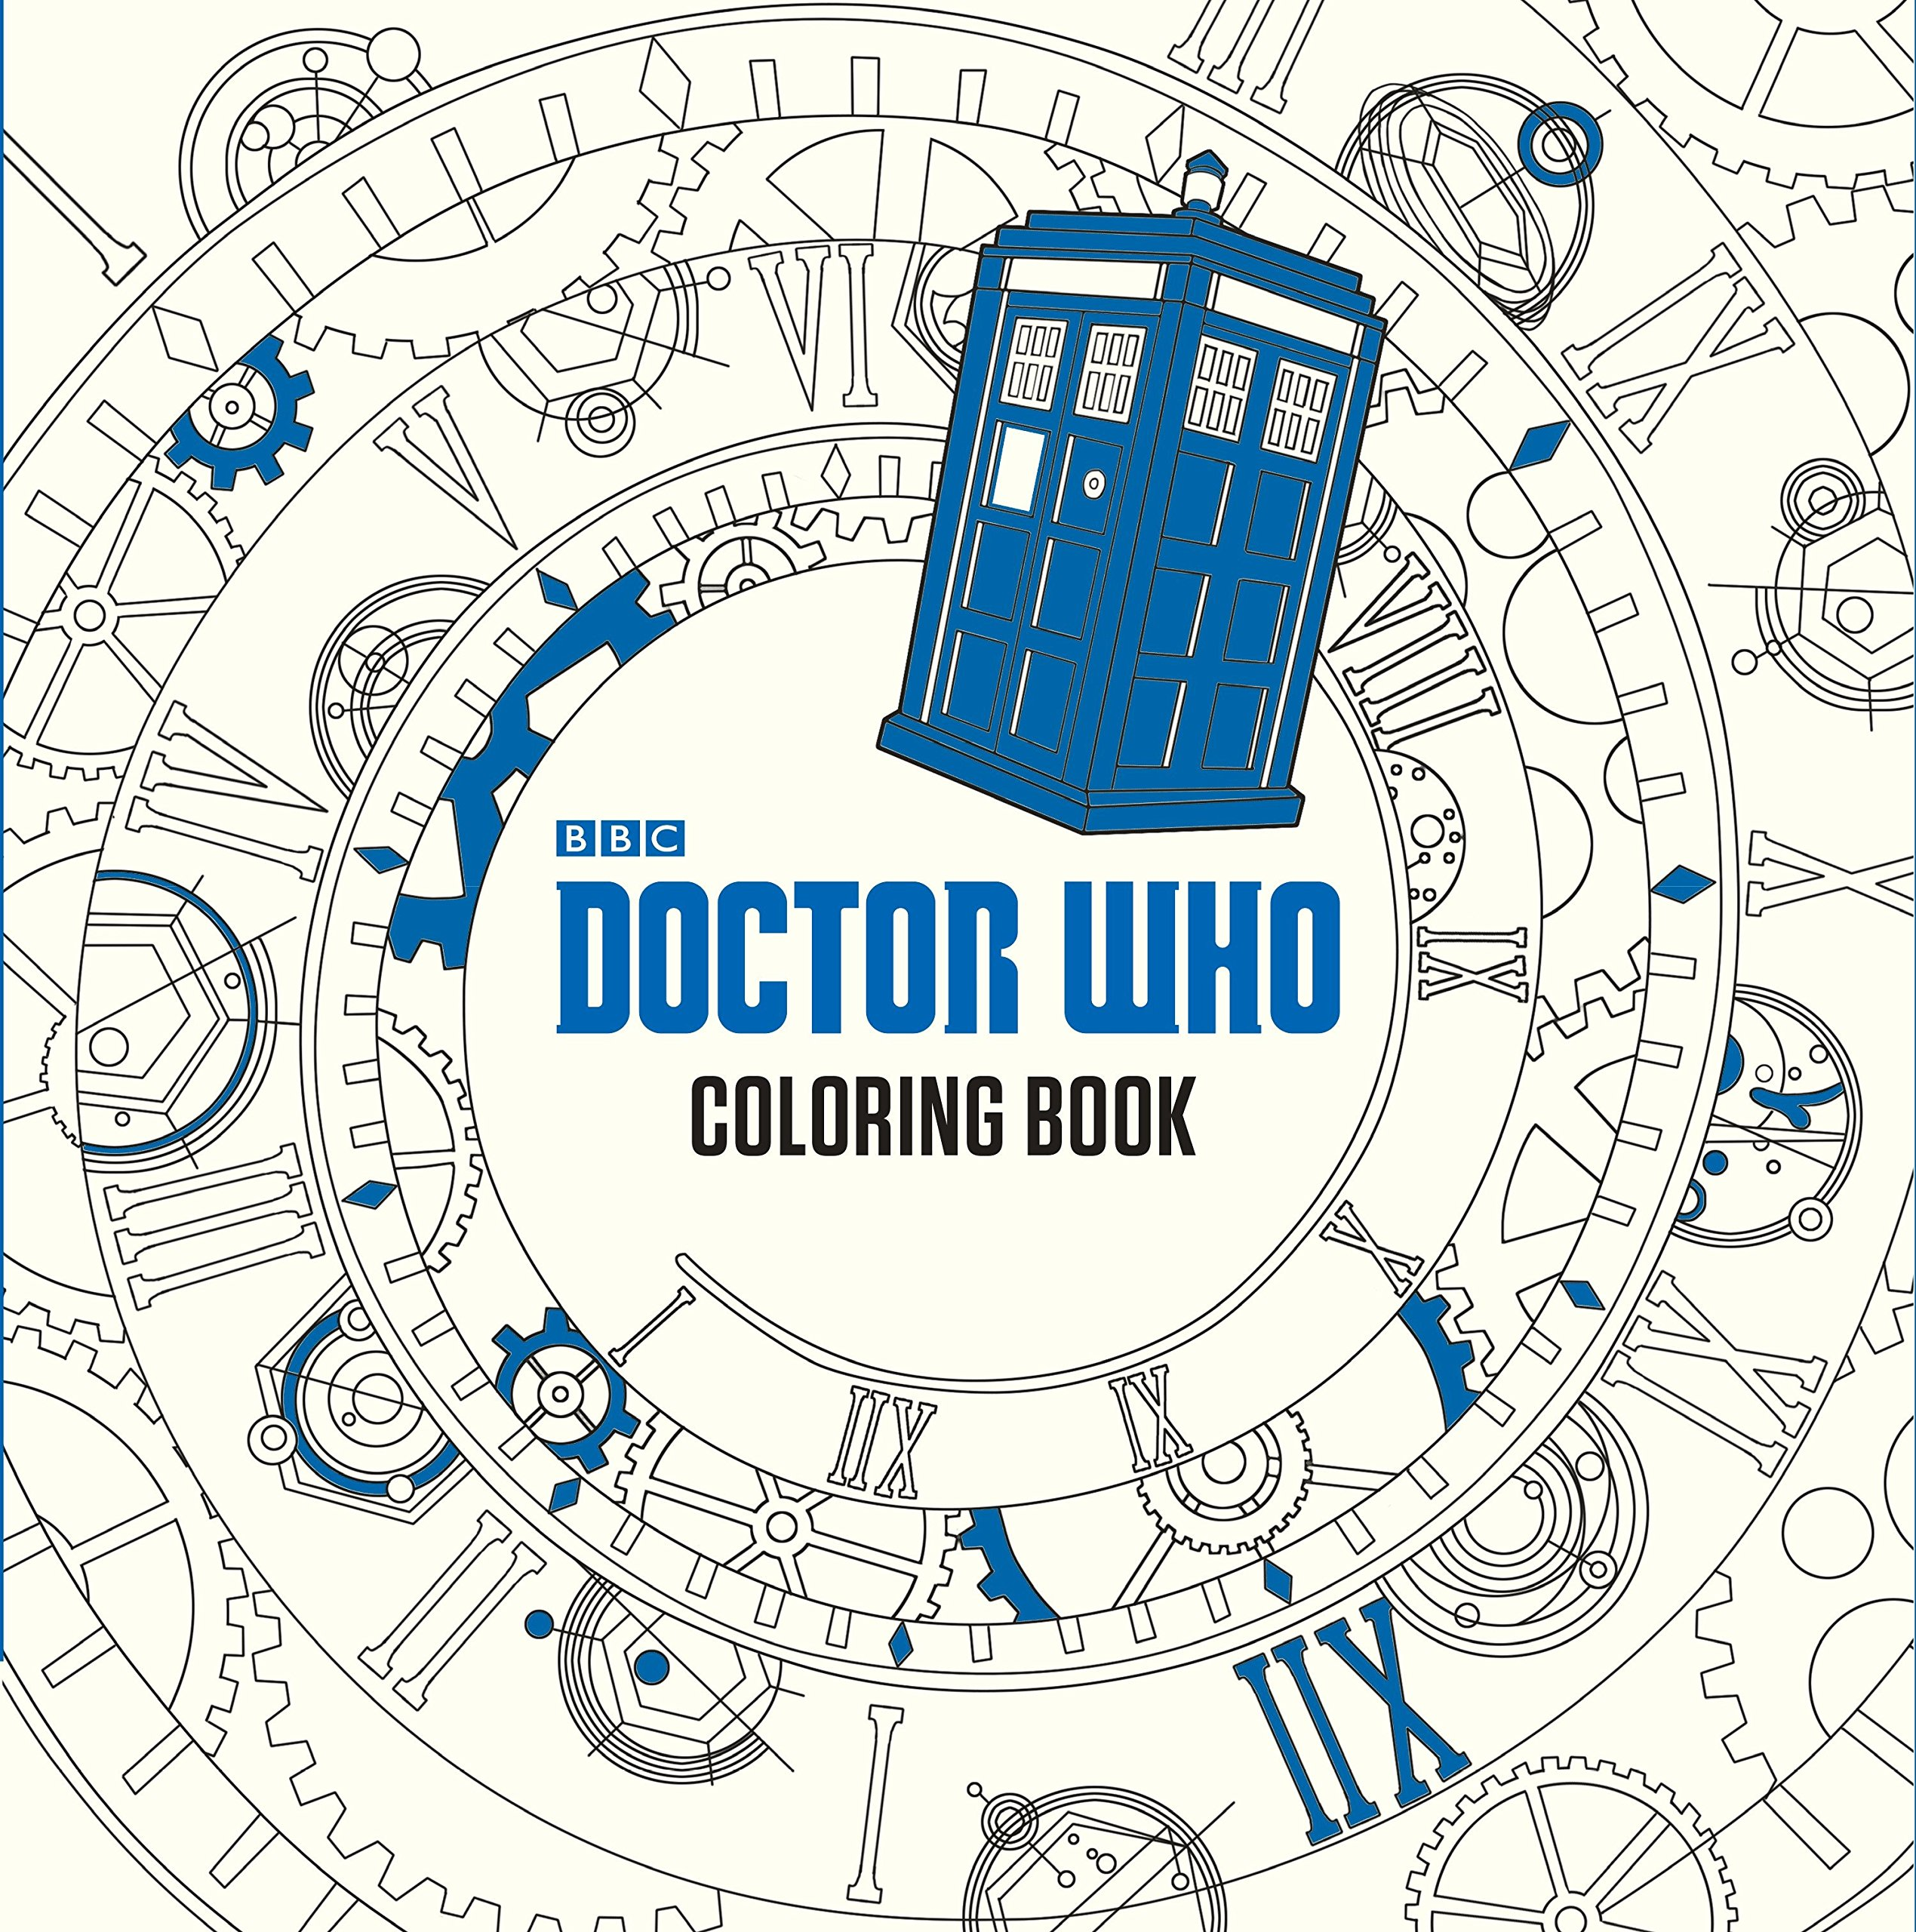 Doctor Who Coloring Book: James Newman Gray, Lee Teng Chew, Jan ...